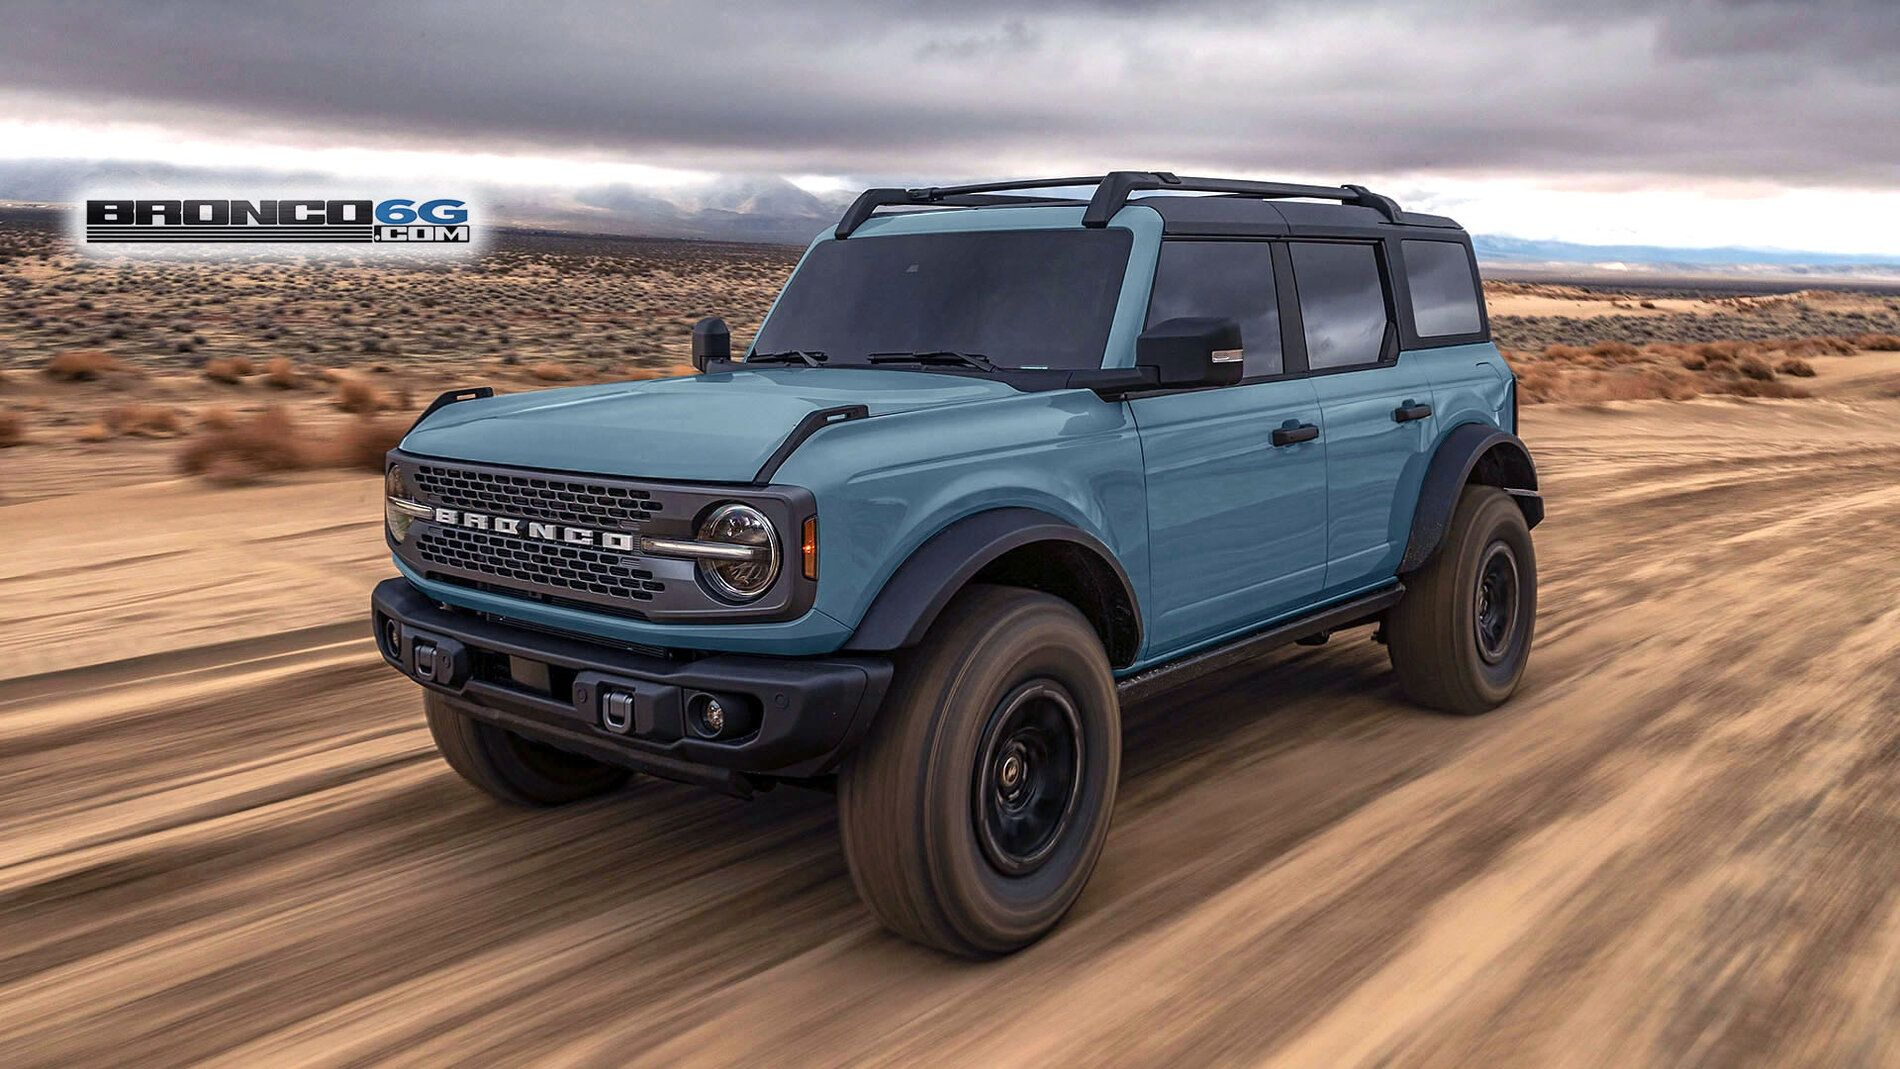 Area 51 Bronco First Real Life Looks On Bronco Sport New Pics Page 8 2021 Ford Bronco Forum 6th Generation Br In 2020 Ford Bronco New Bronco Bronco Sports